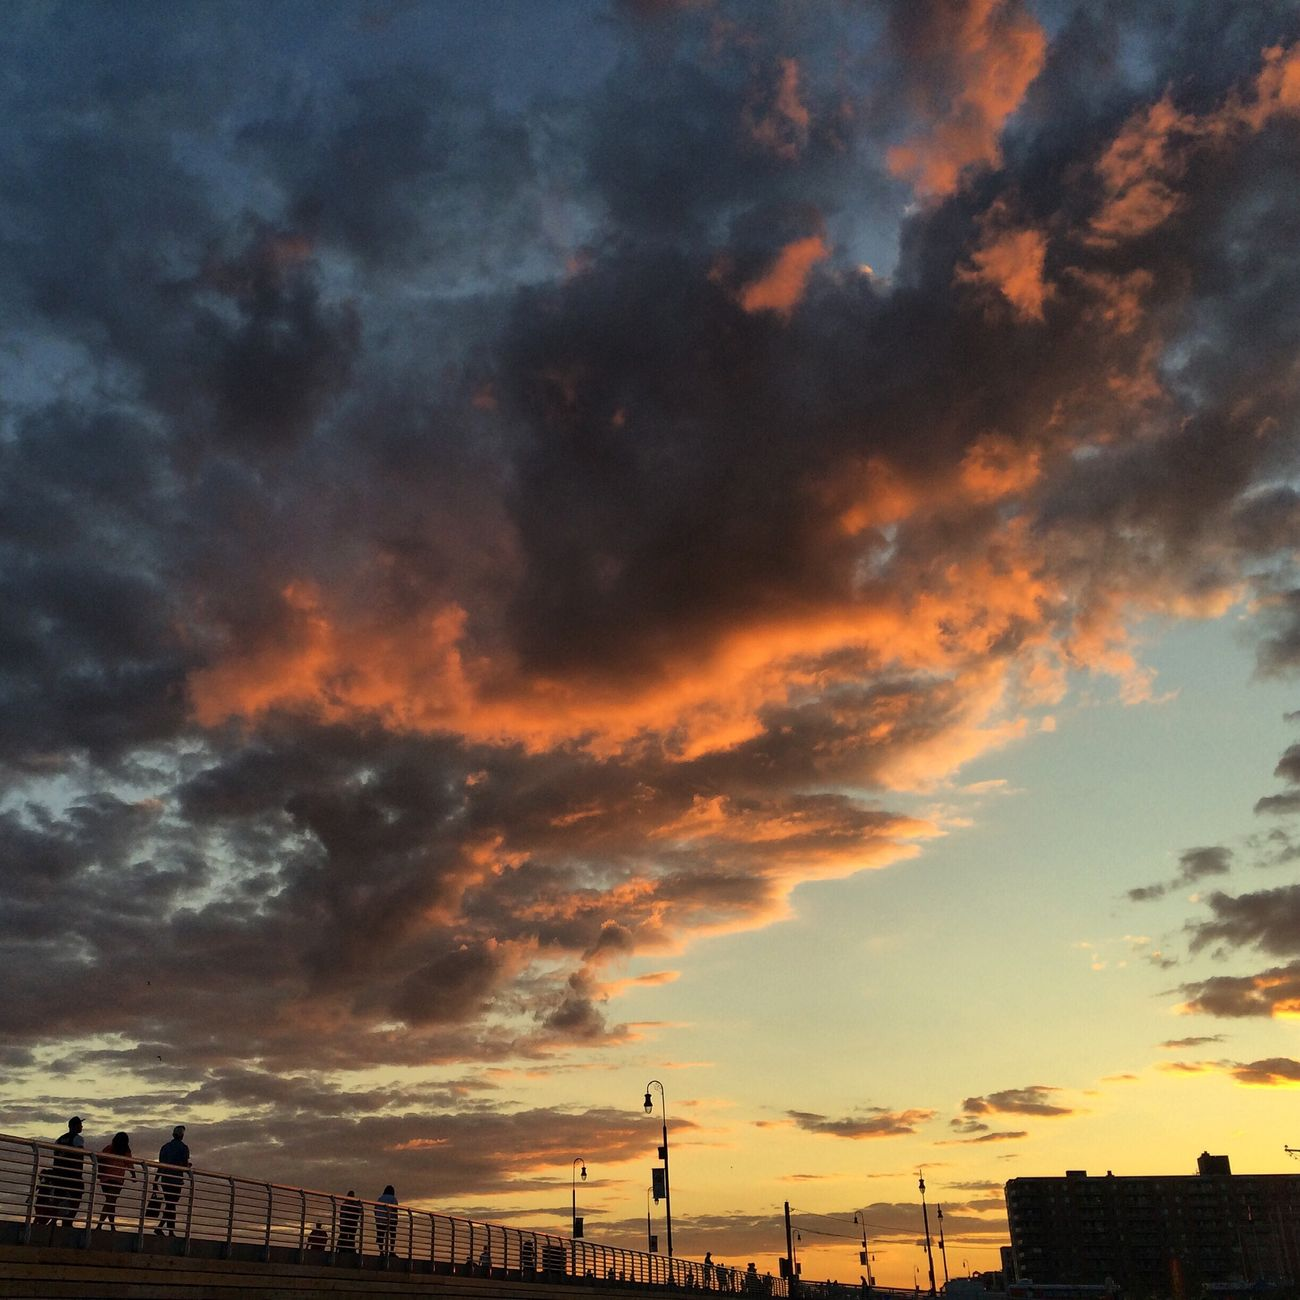 Sunset At Long Beach, NY Beautiful Sky EyeEm Best Shots Sunset #sun #clouds #skylovers #sky #nature #beautifulinnature #naturalbeauty #photography #landscape